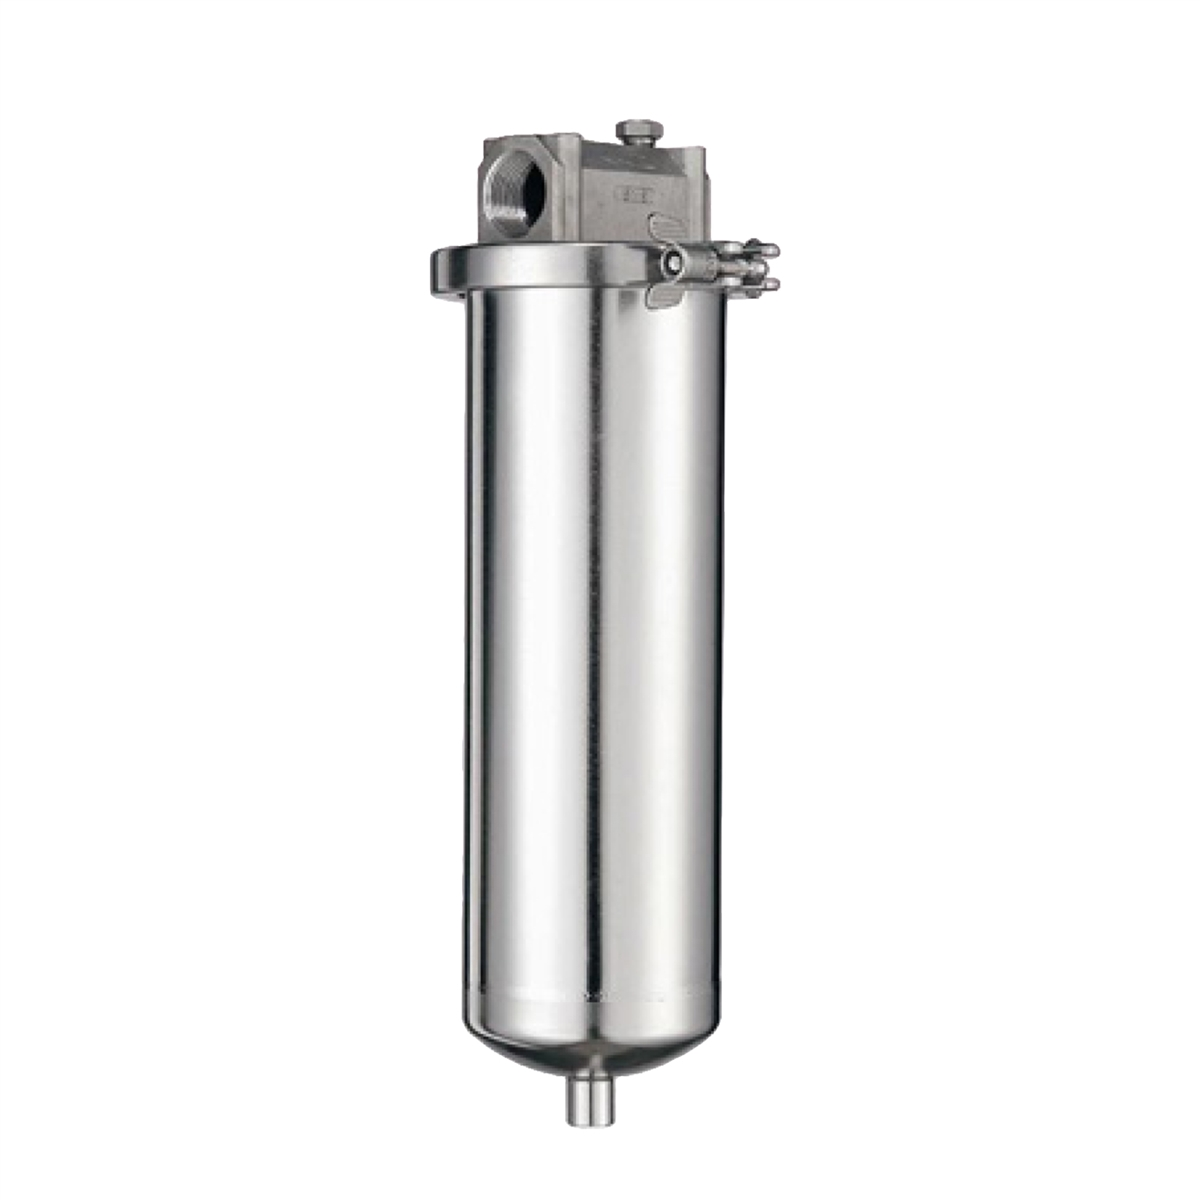 Stainless Steel Air Cleaner Housing : Ss stainless steel single element filter housing